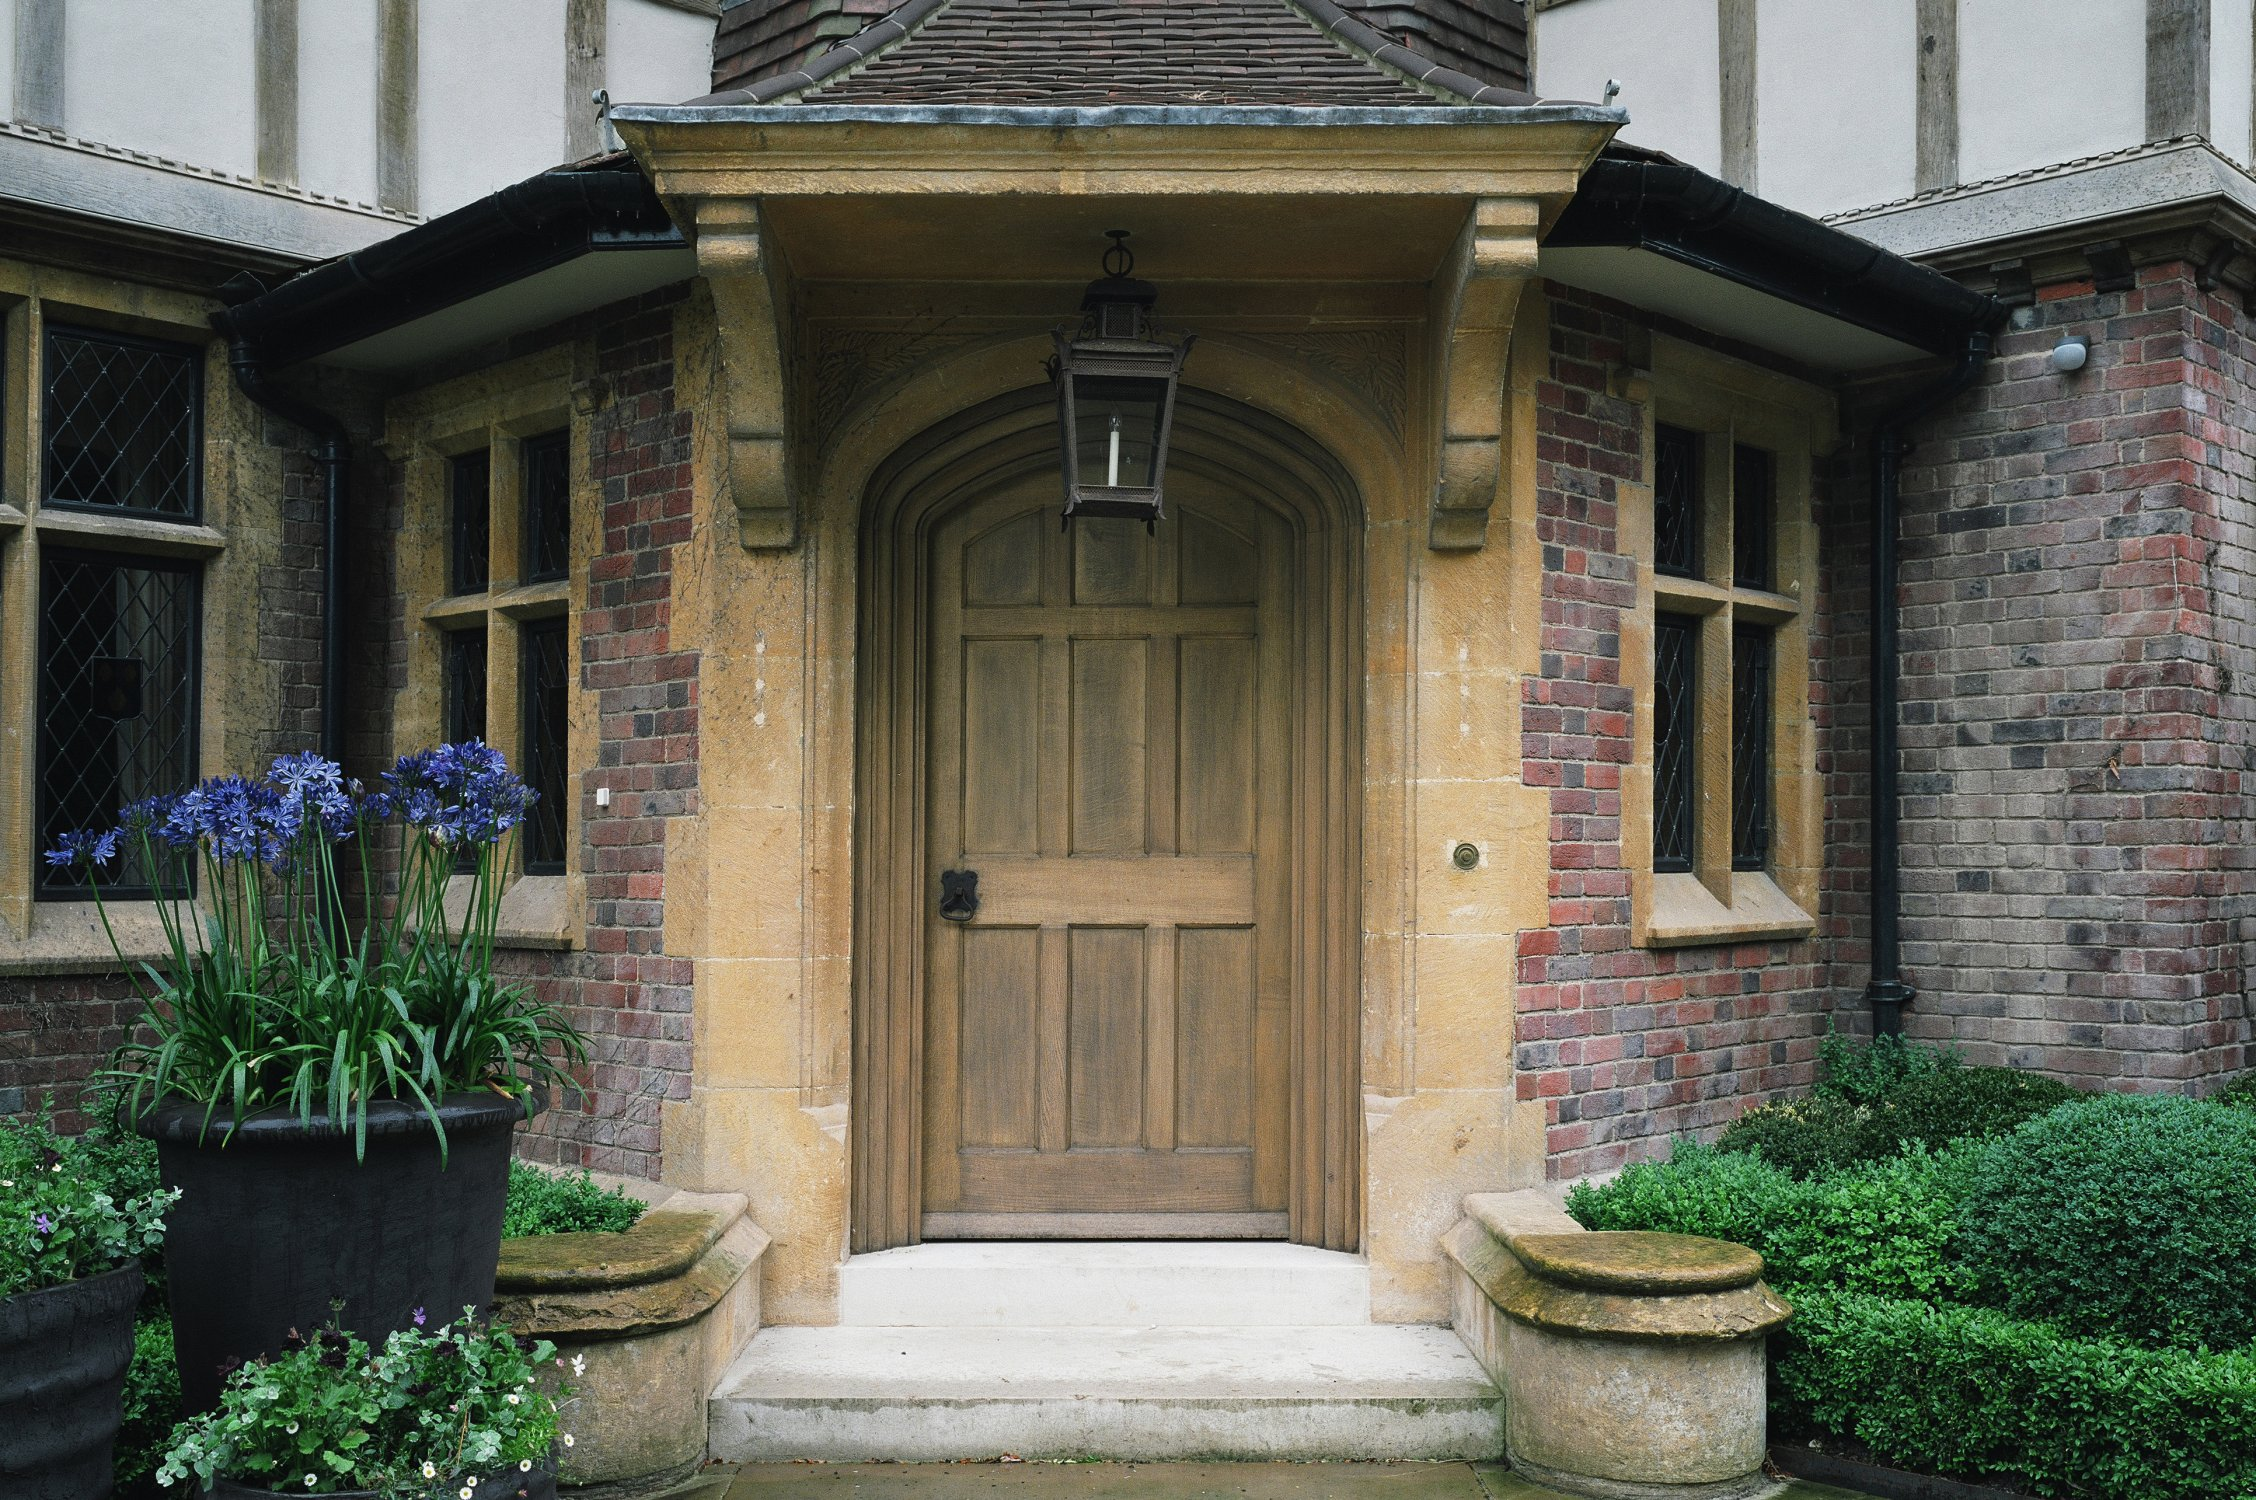 Solid oak arched main entrance door